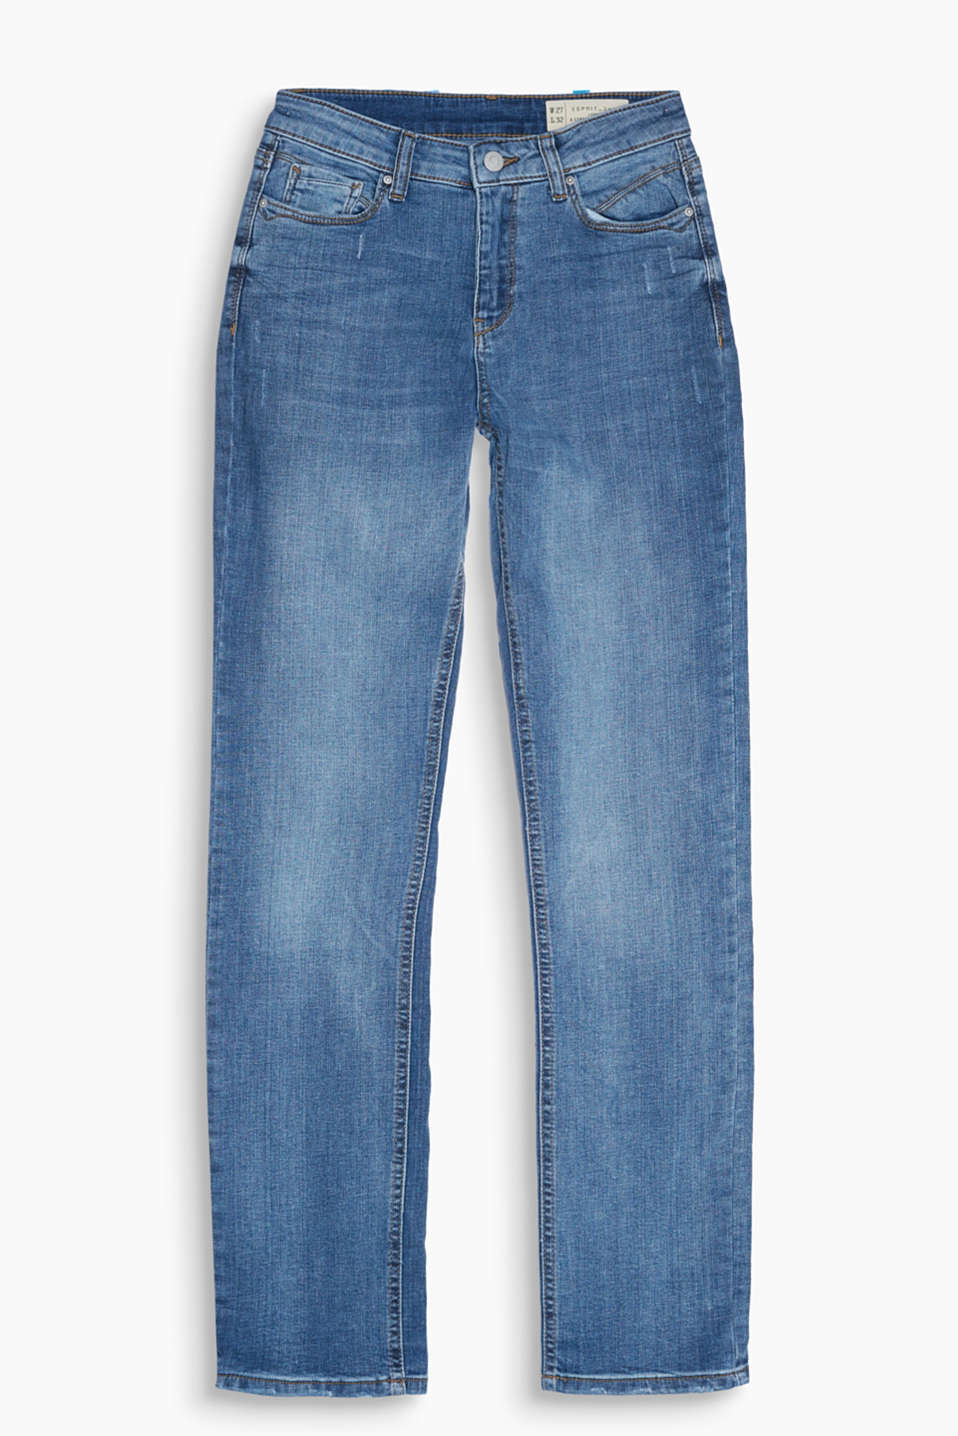 High-waisted jeans with vintage effects and added stretch for comfort